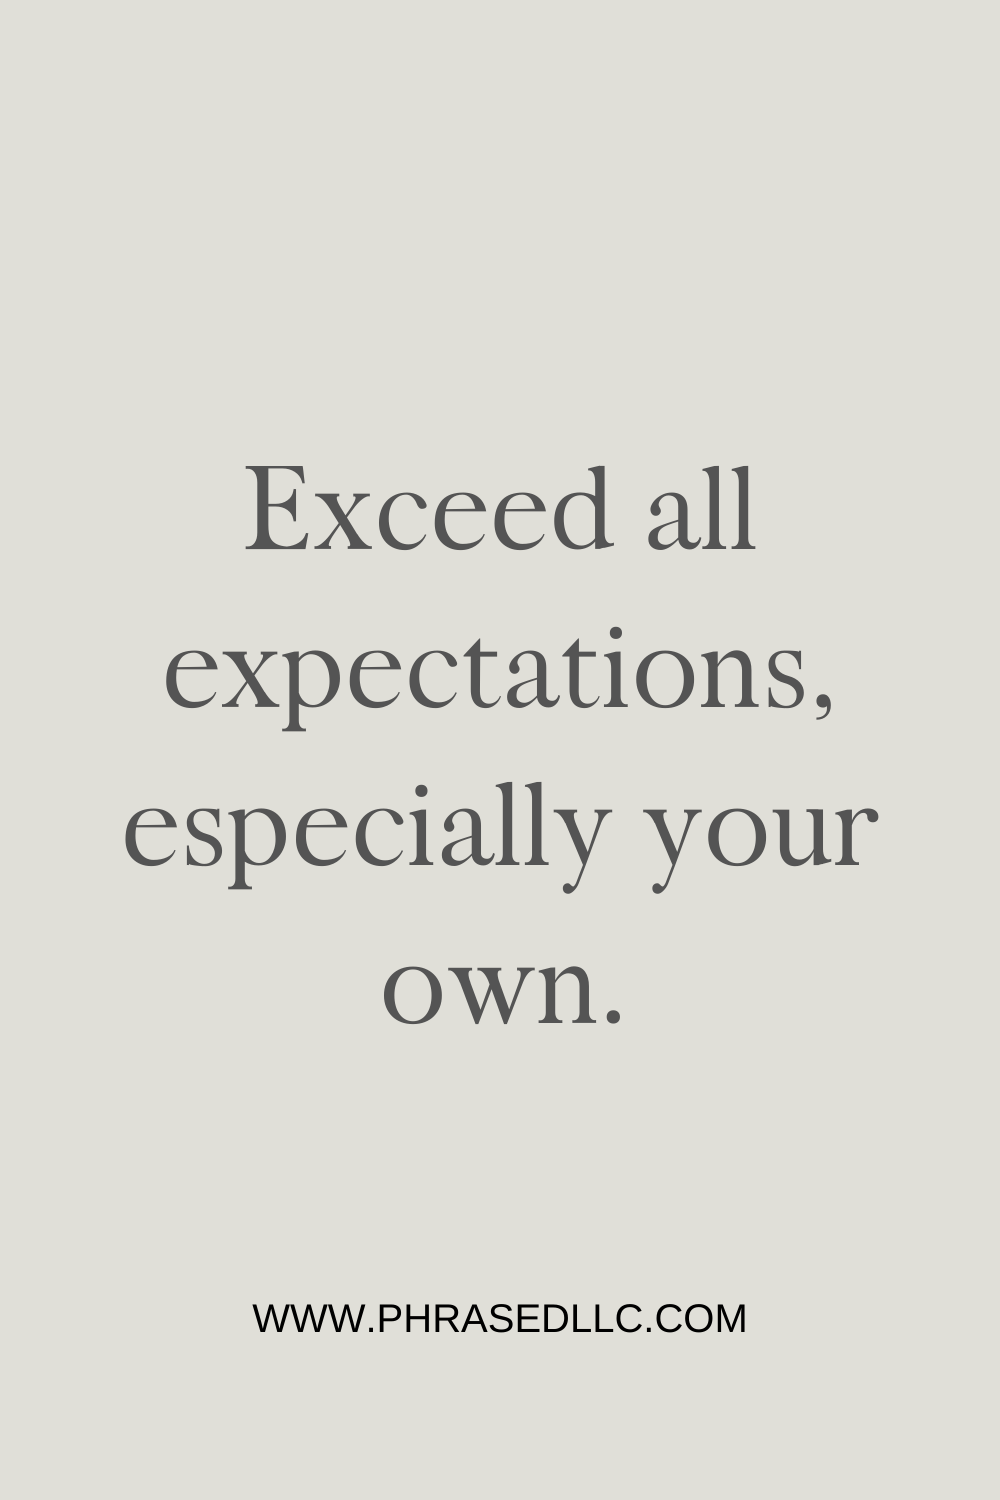 Short inspirational quote on exceeding expectations.